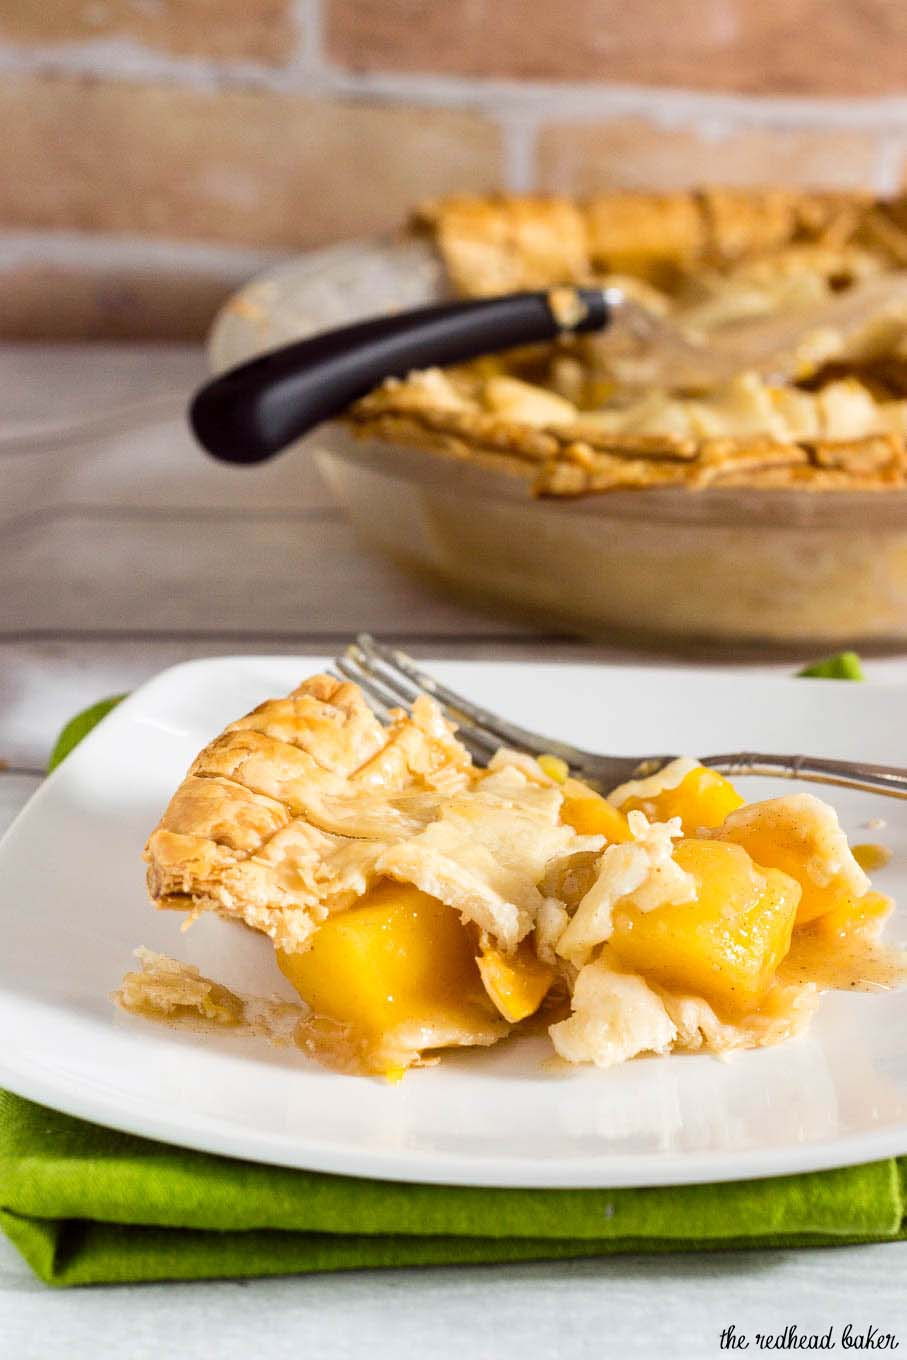 One slice of this mango peach pie is a tropical treat! Chunks of fresh fruit are lightly spiced with cinnamon, ginger and nutmeg.  #OXOGoodCookies #BakeADifference